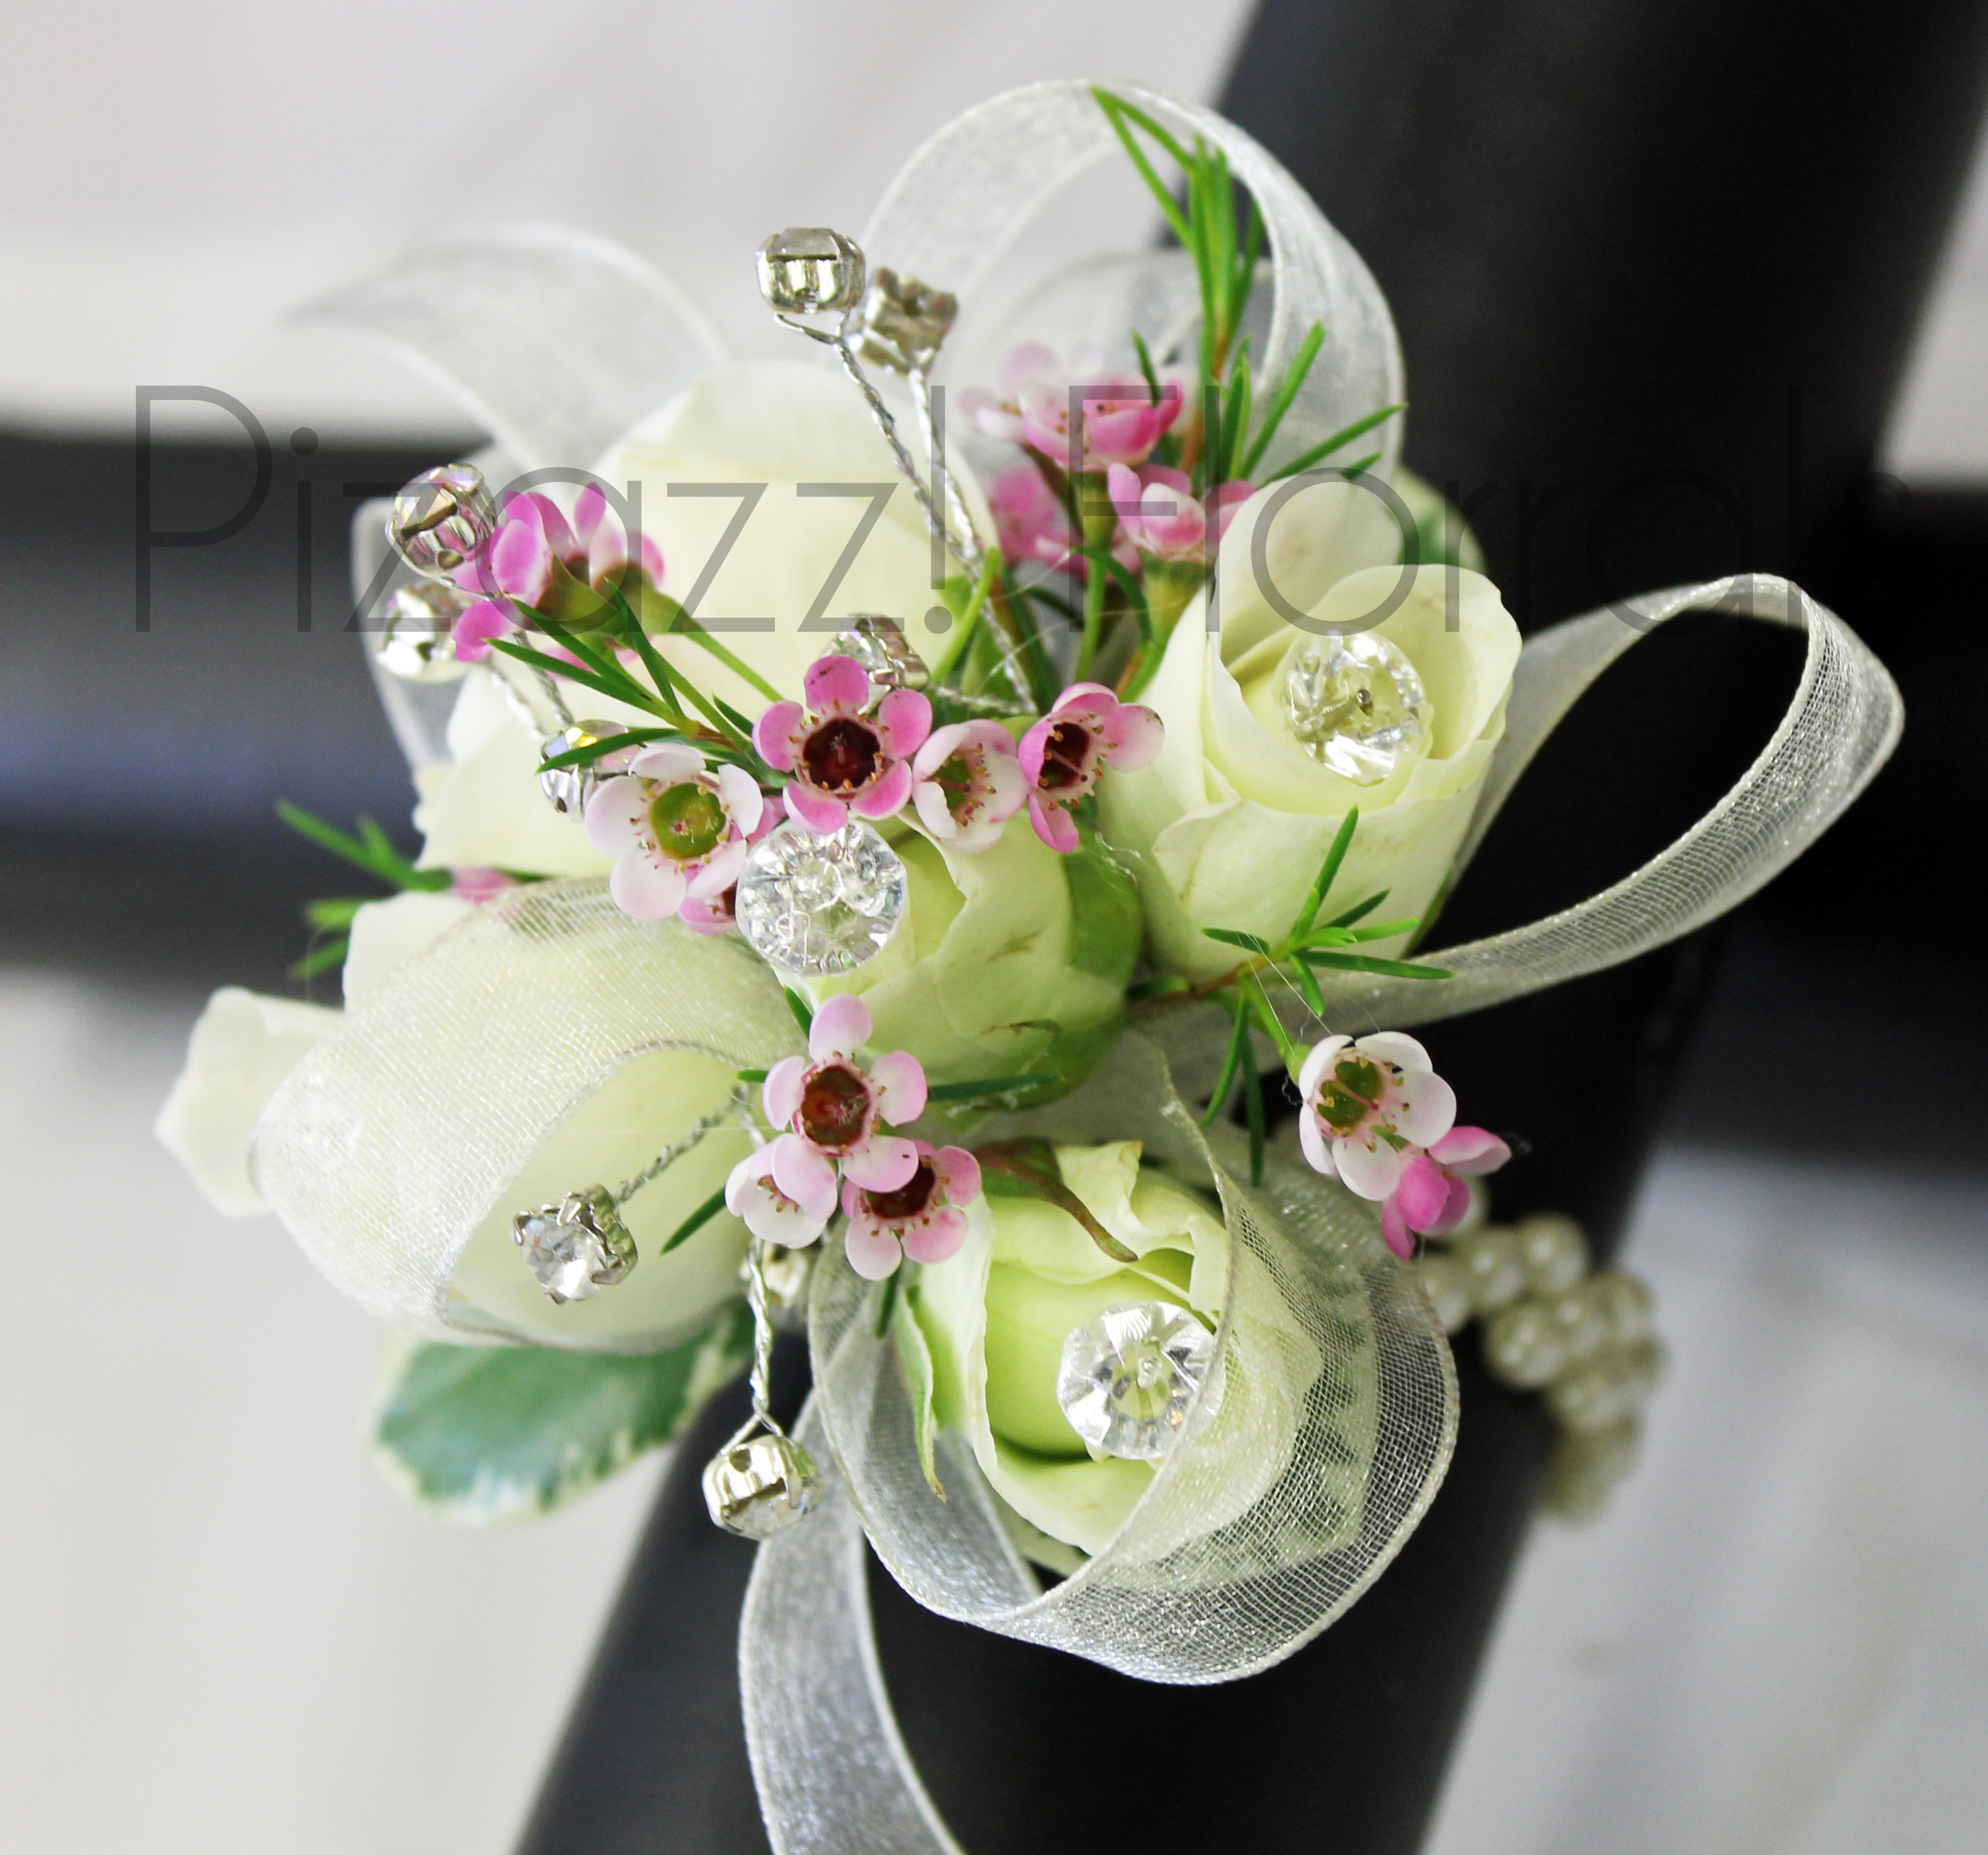 Chatham Ontario Prom Flowers Pizazz Florals Blog